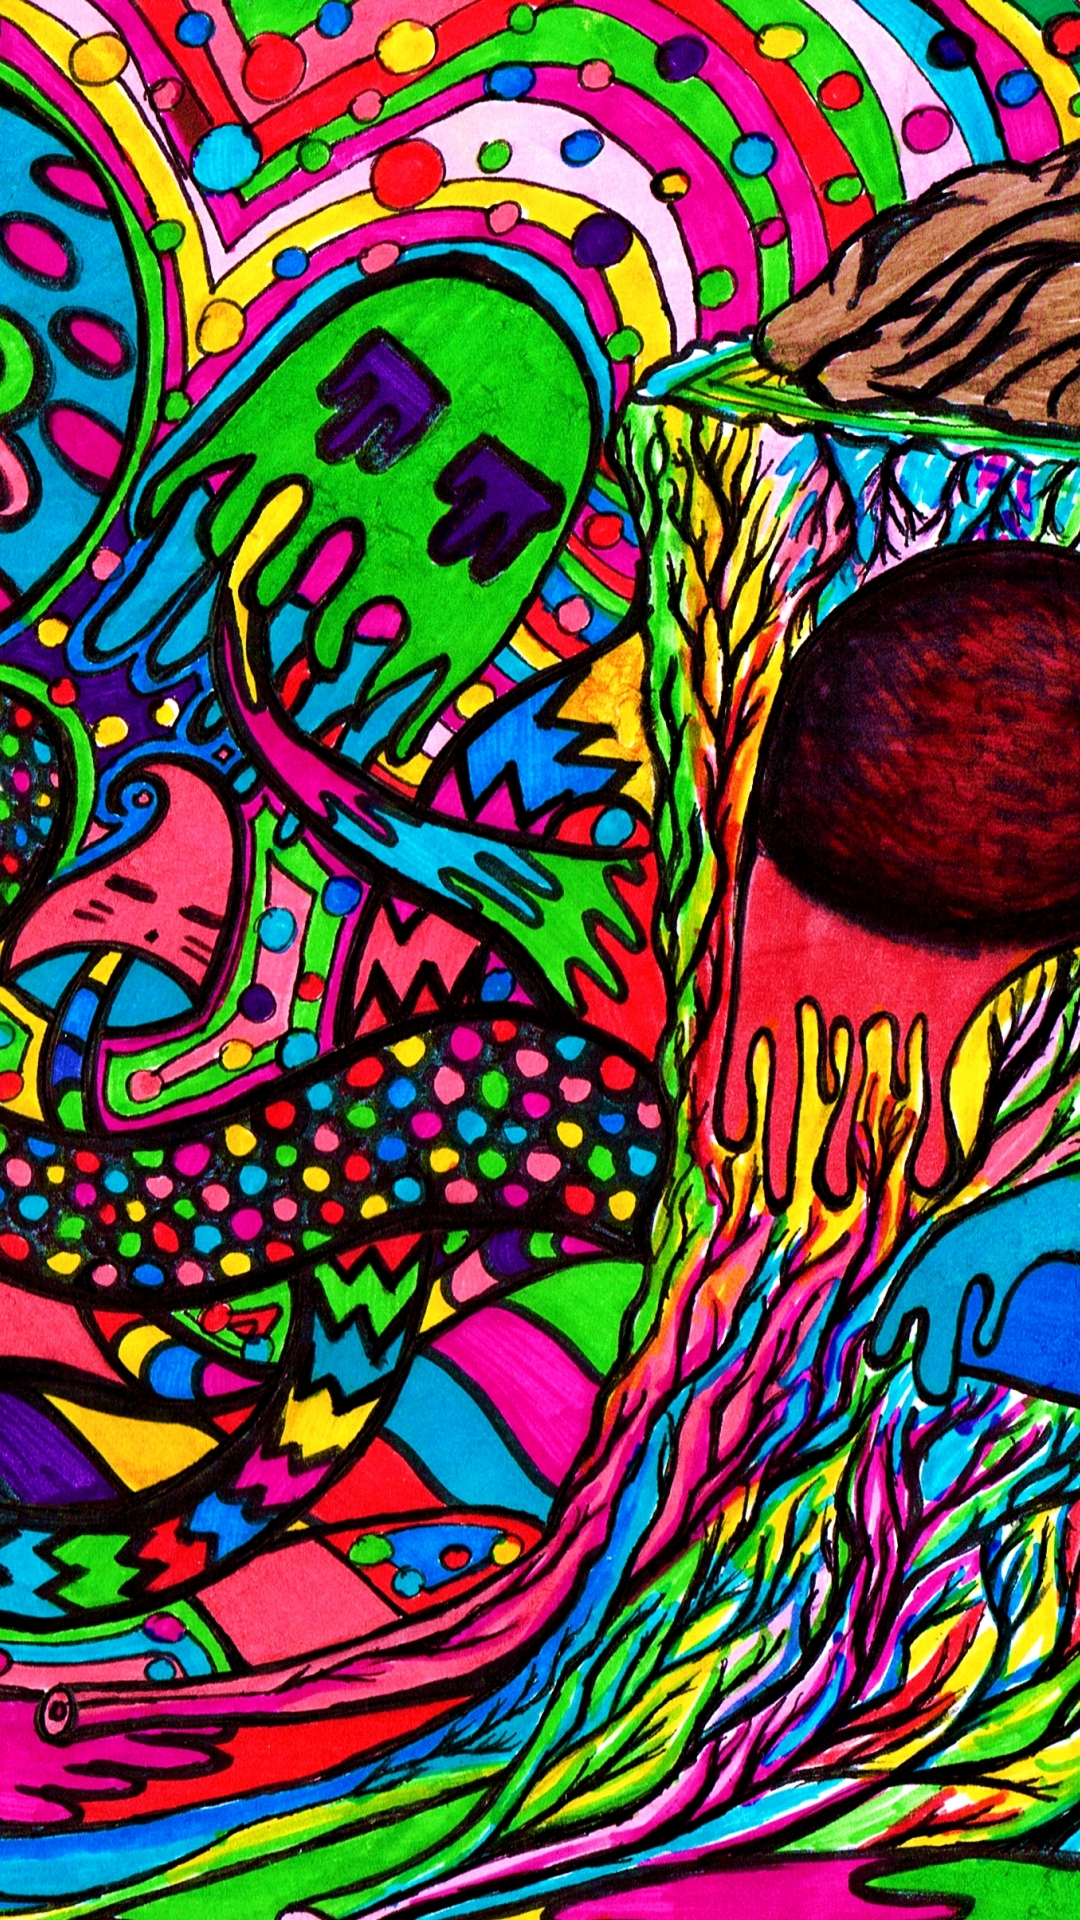 Trippy Weed Hd Wallpaper Android, Amazing Hd Wallpaper - Trippy Home Screen Weed , HD Wallpaper & Backgrounds